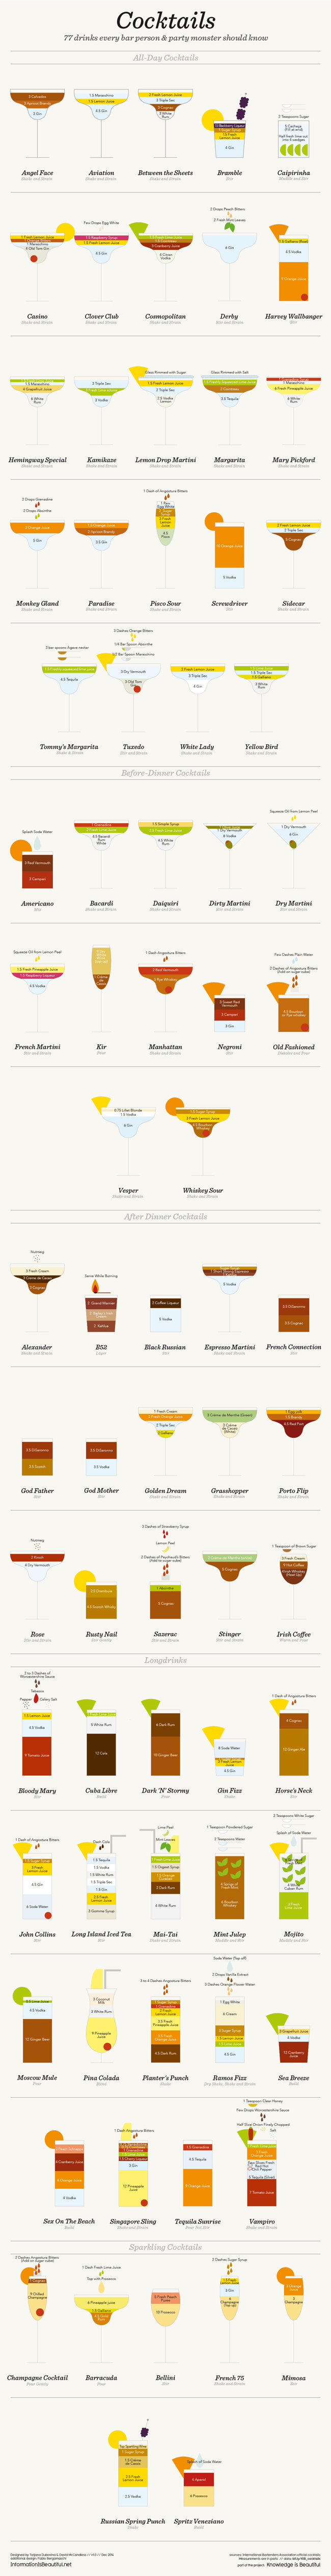 Interactive Cocktail Shaker infographic